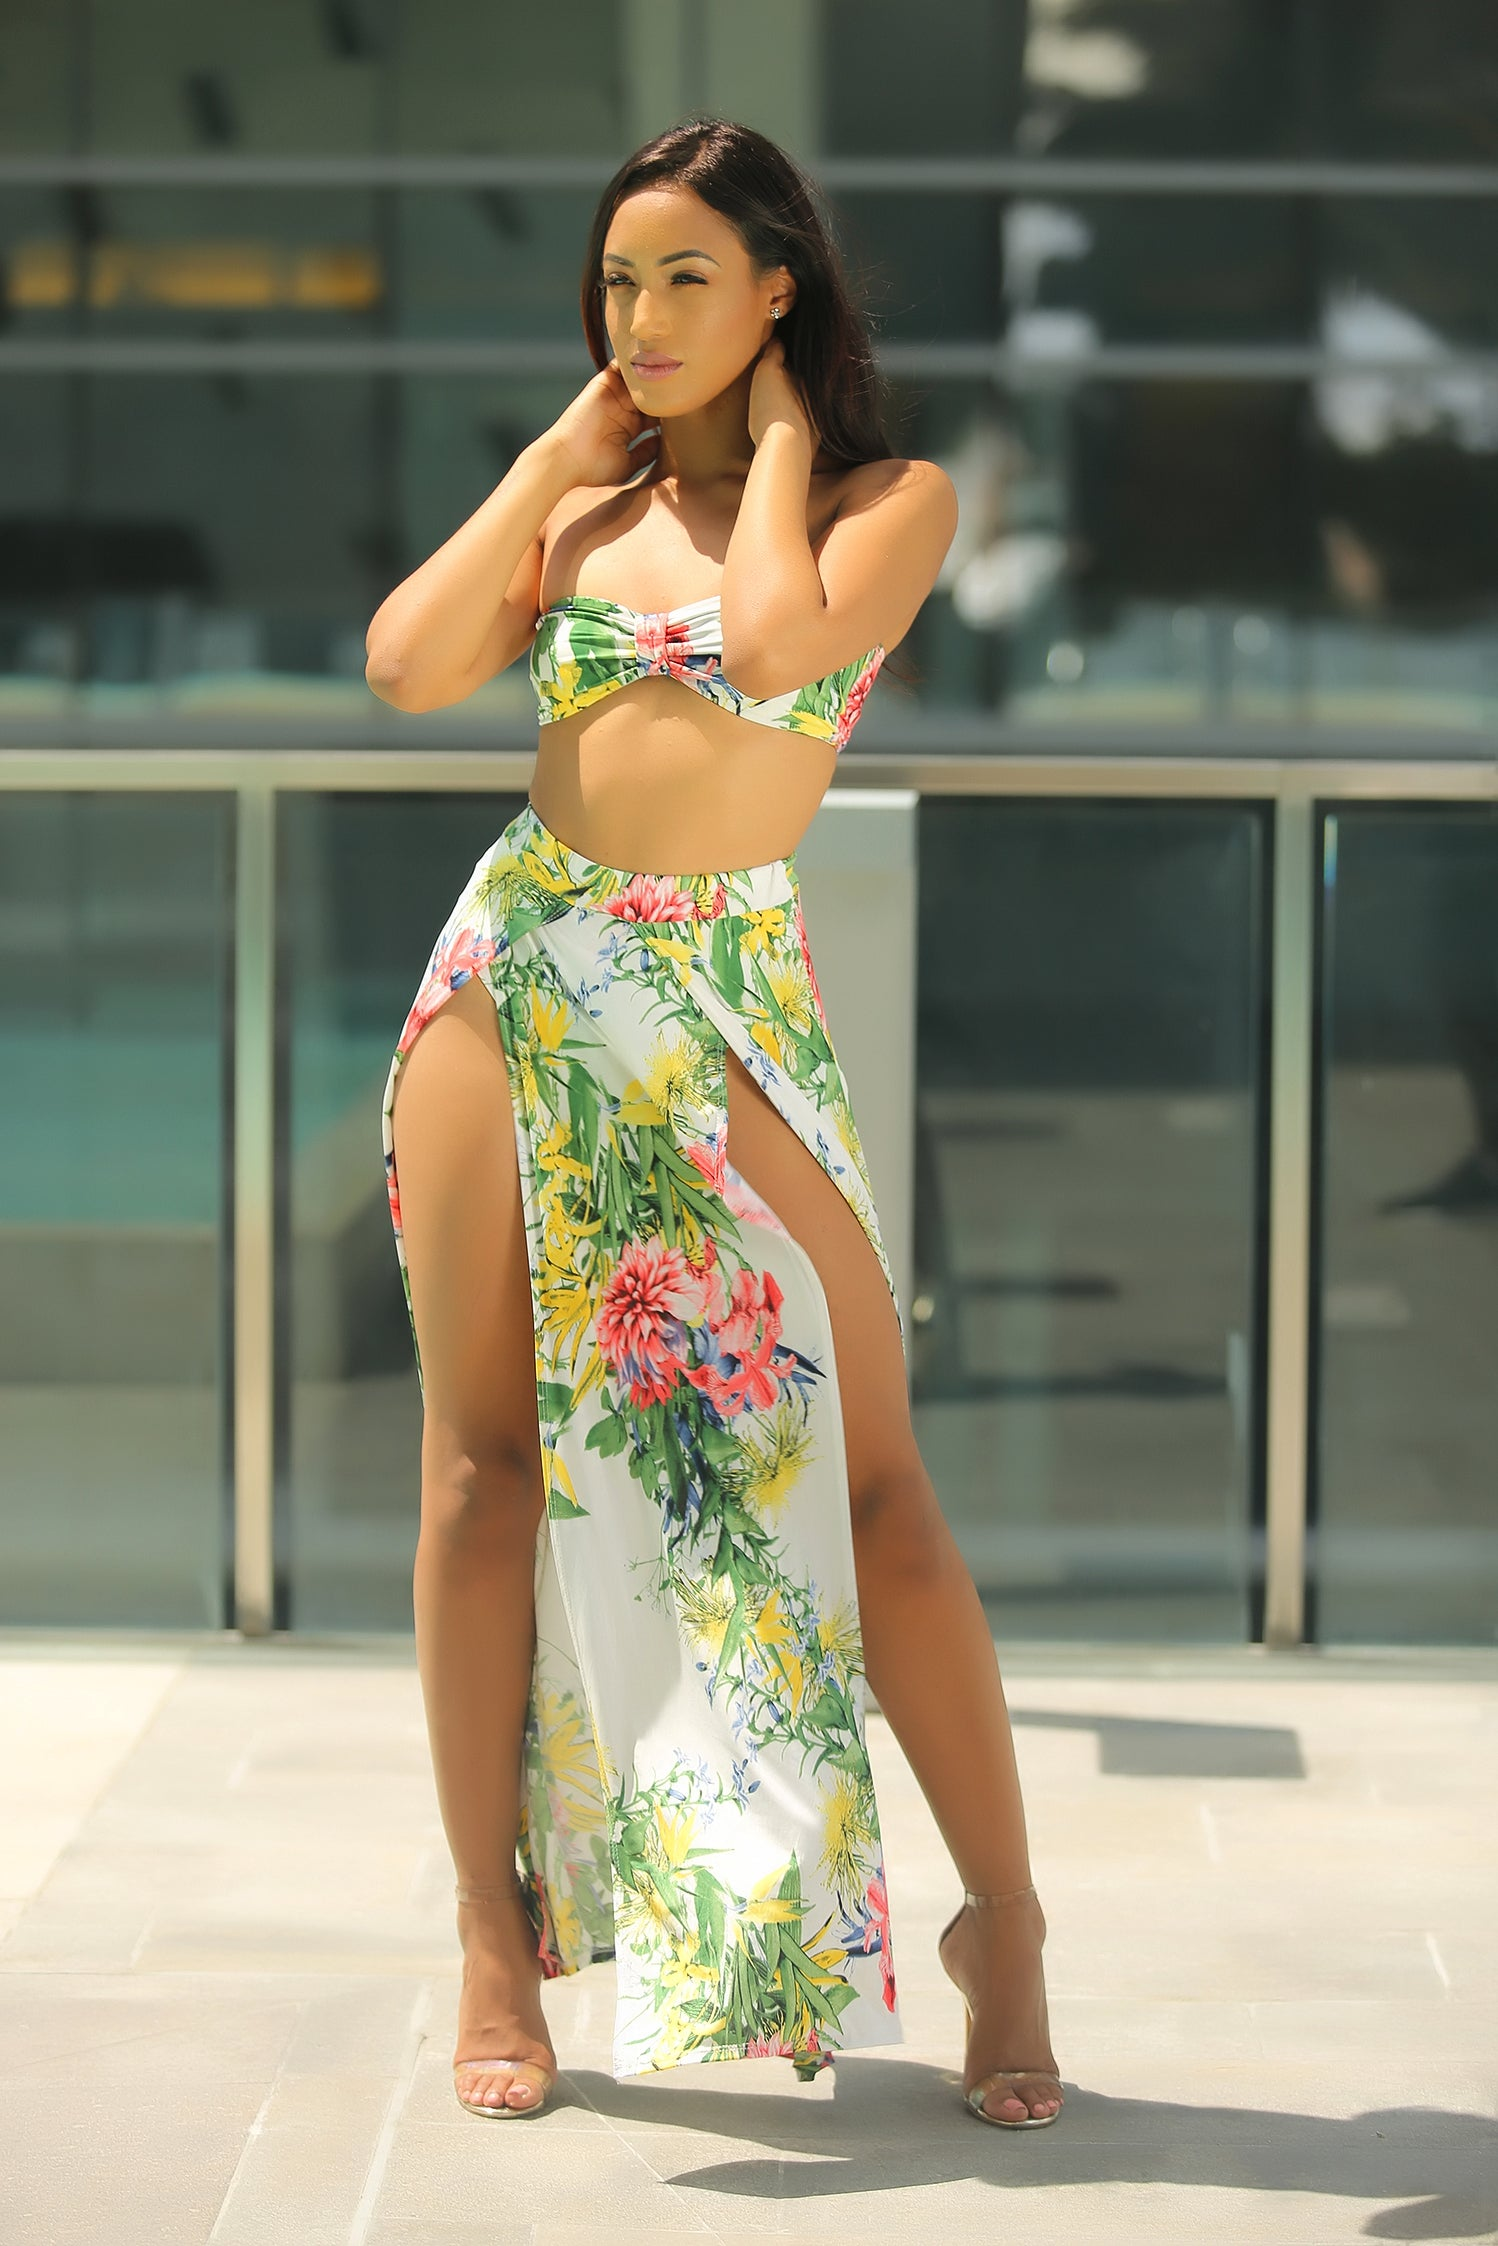 f83033443a4 ... Alice - Exotic Leaves Floral Print Swimsuit Skirt Set - Semai House Of  fashion ...